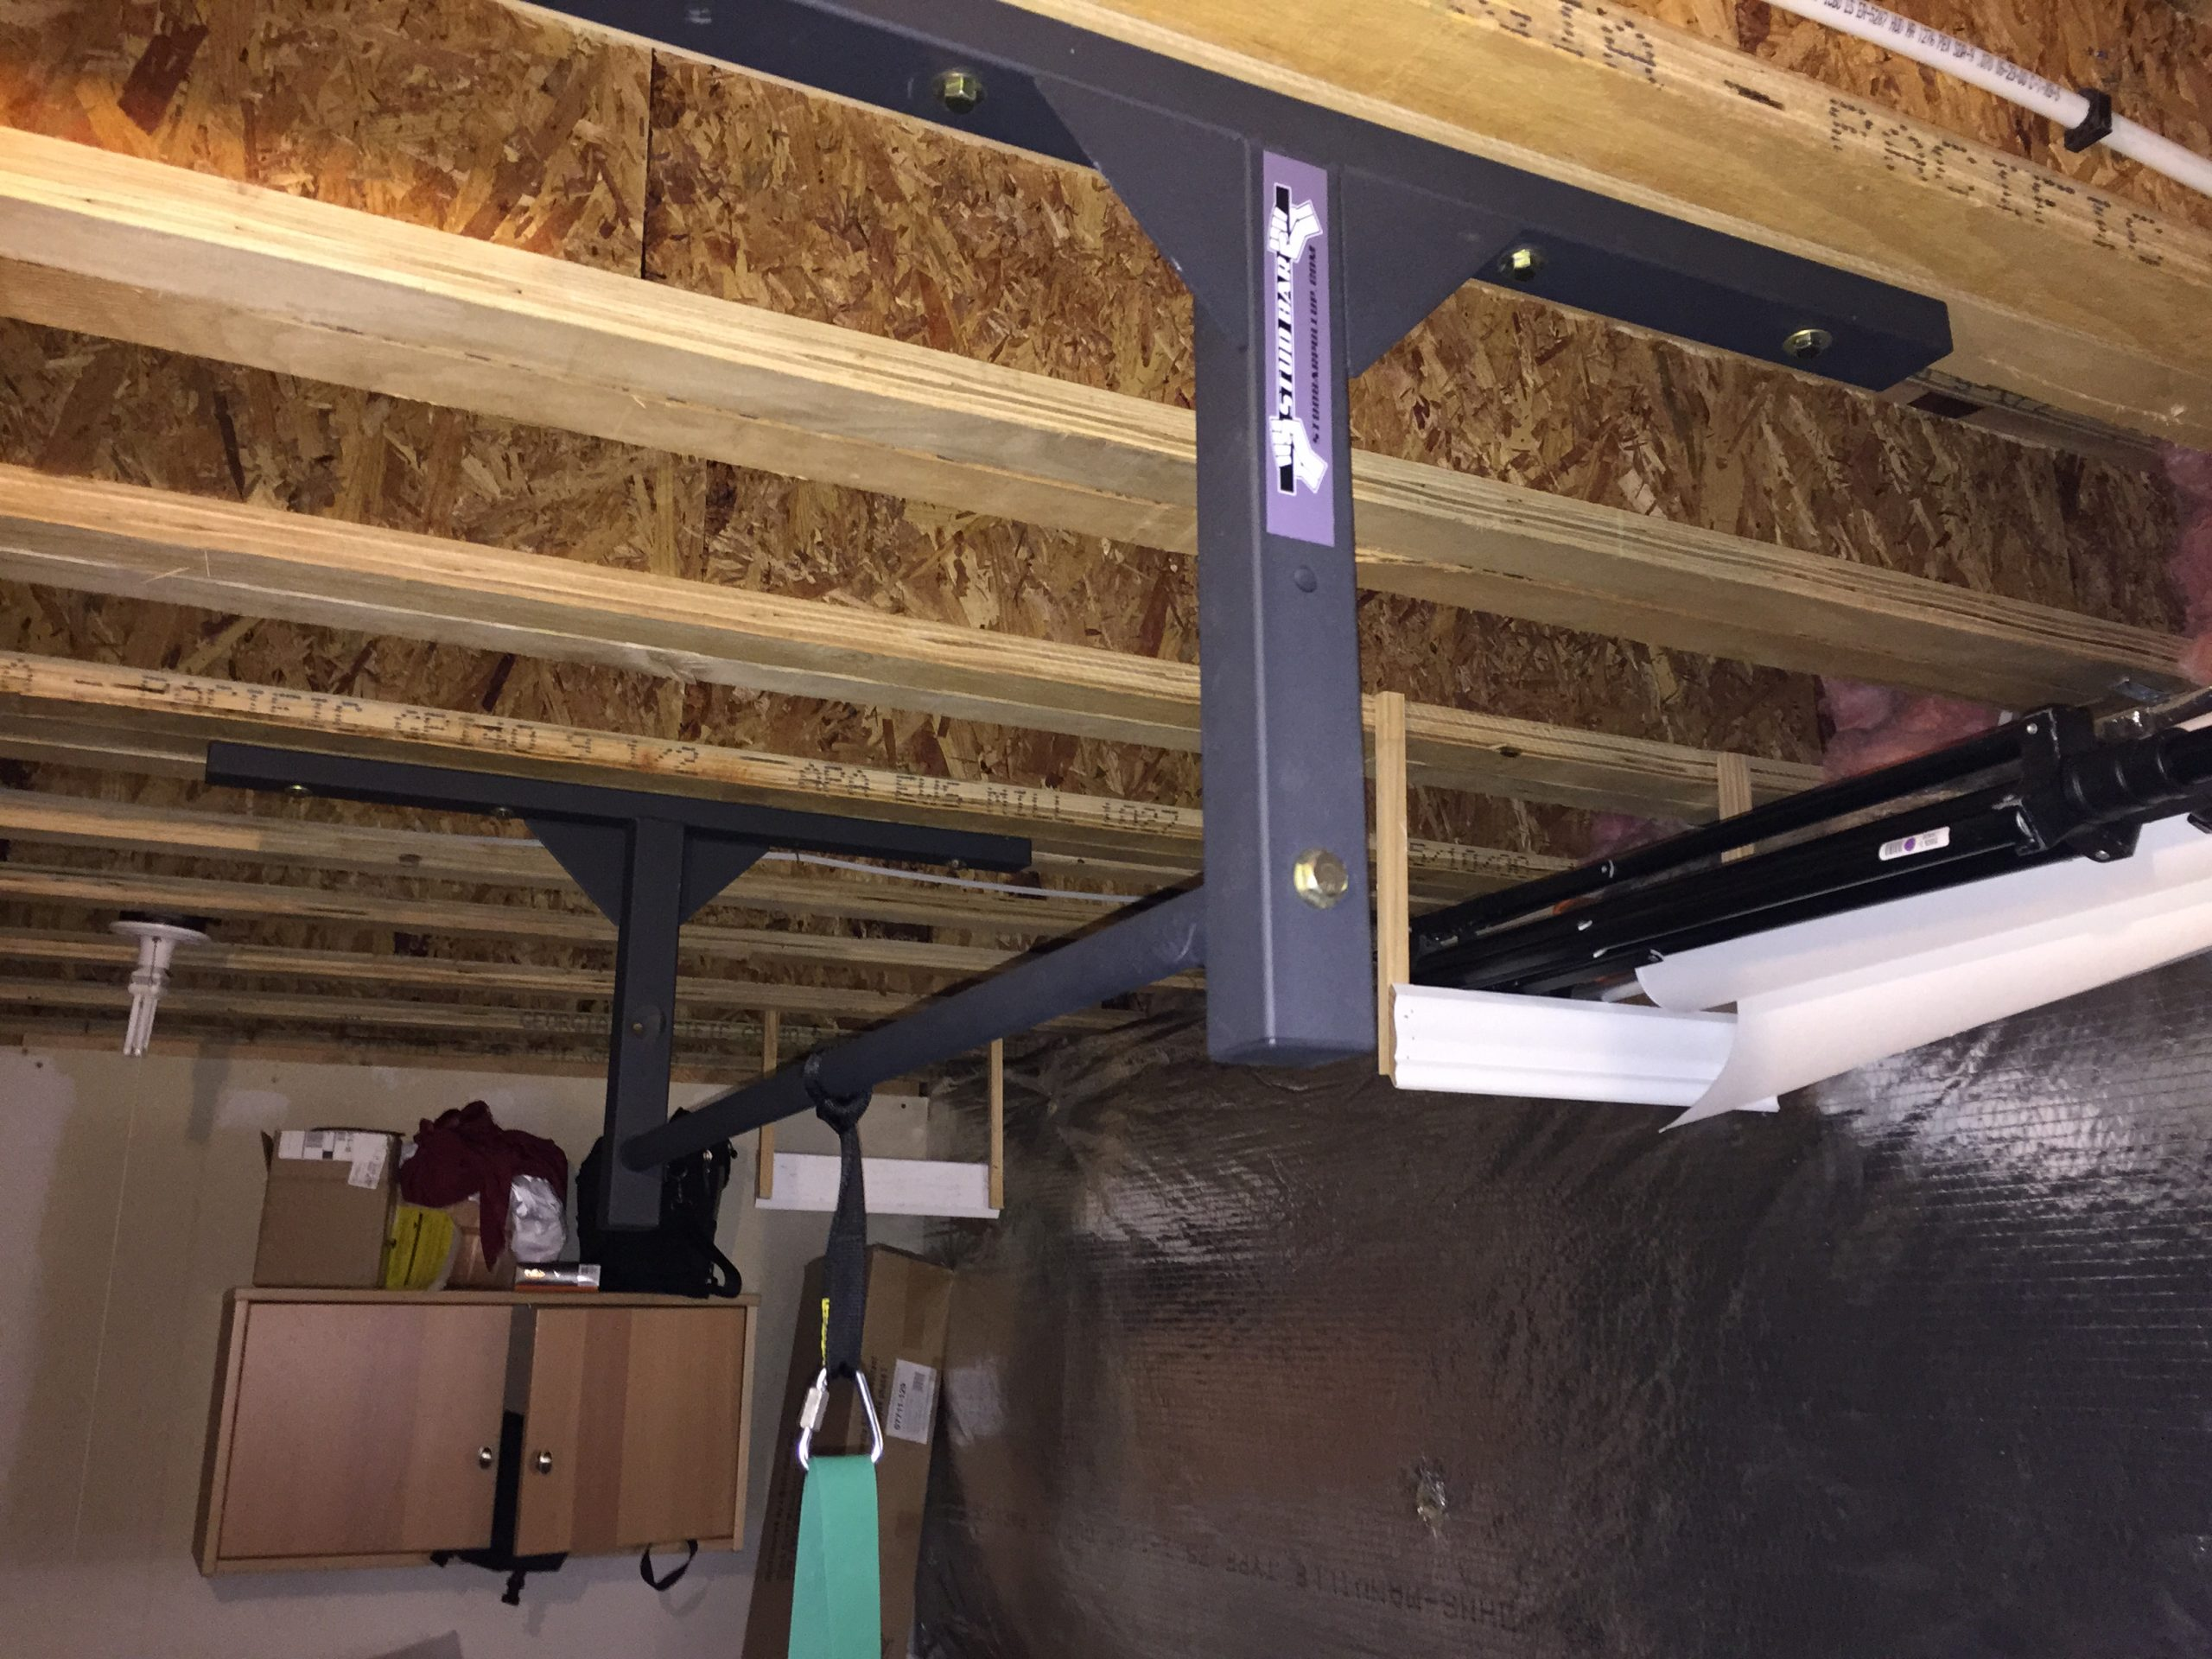 Wood mounted pull up bar